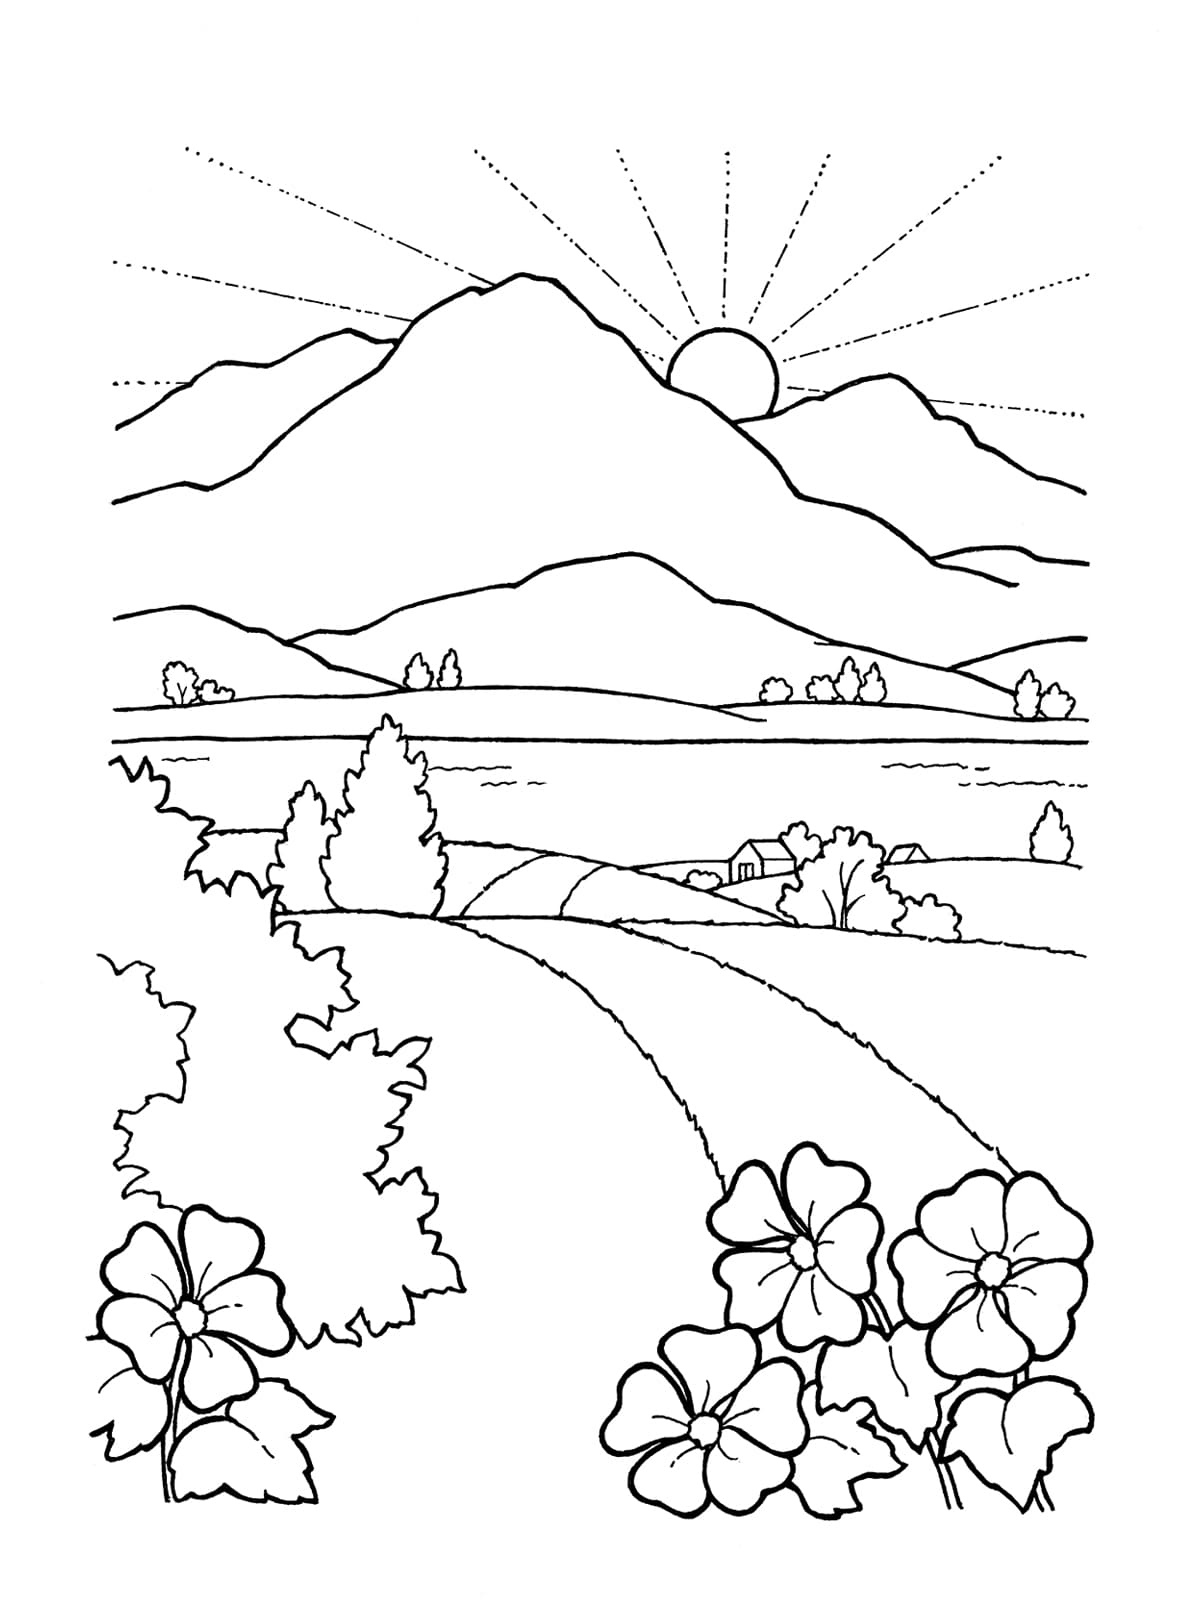 sunset coloring pages beach sunrise coloring page embroidery pattern beach art pages coloring sunset